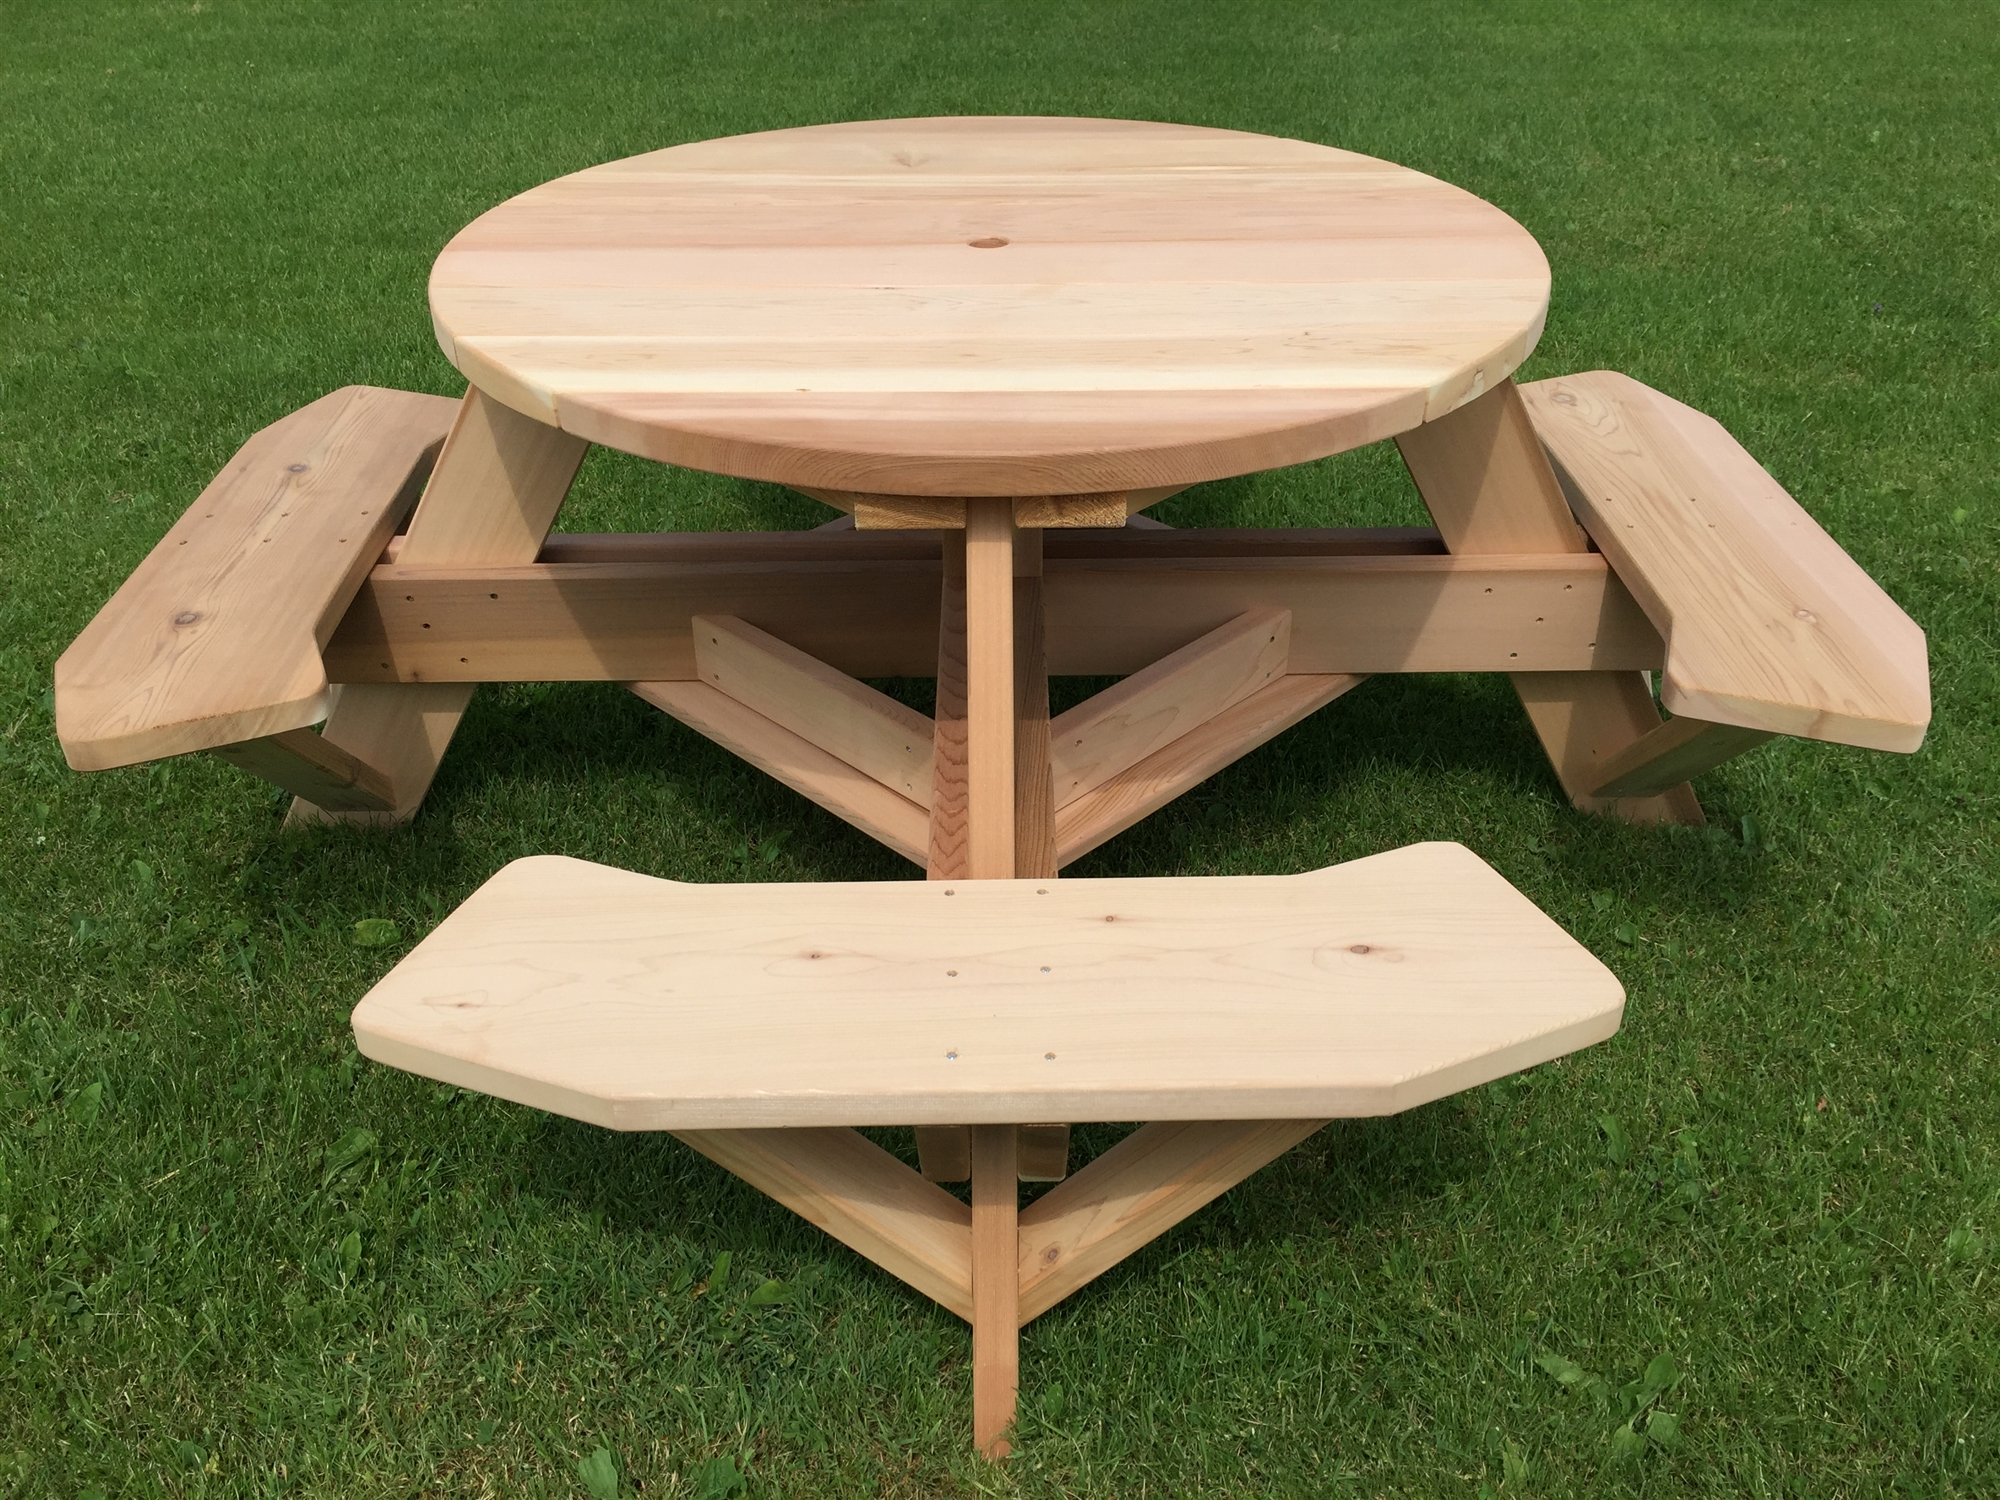 45 Inch Round Wooden Picnic Table With Benches